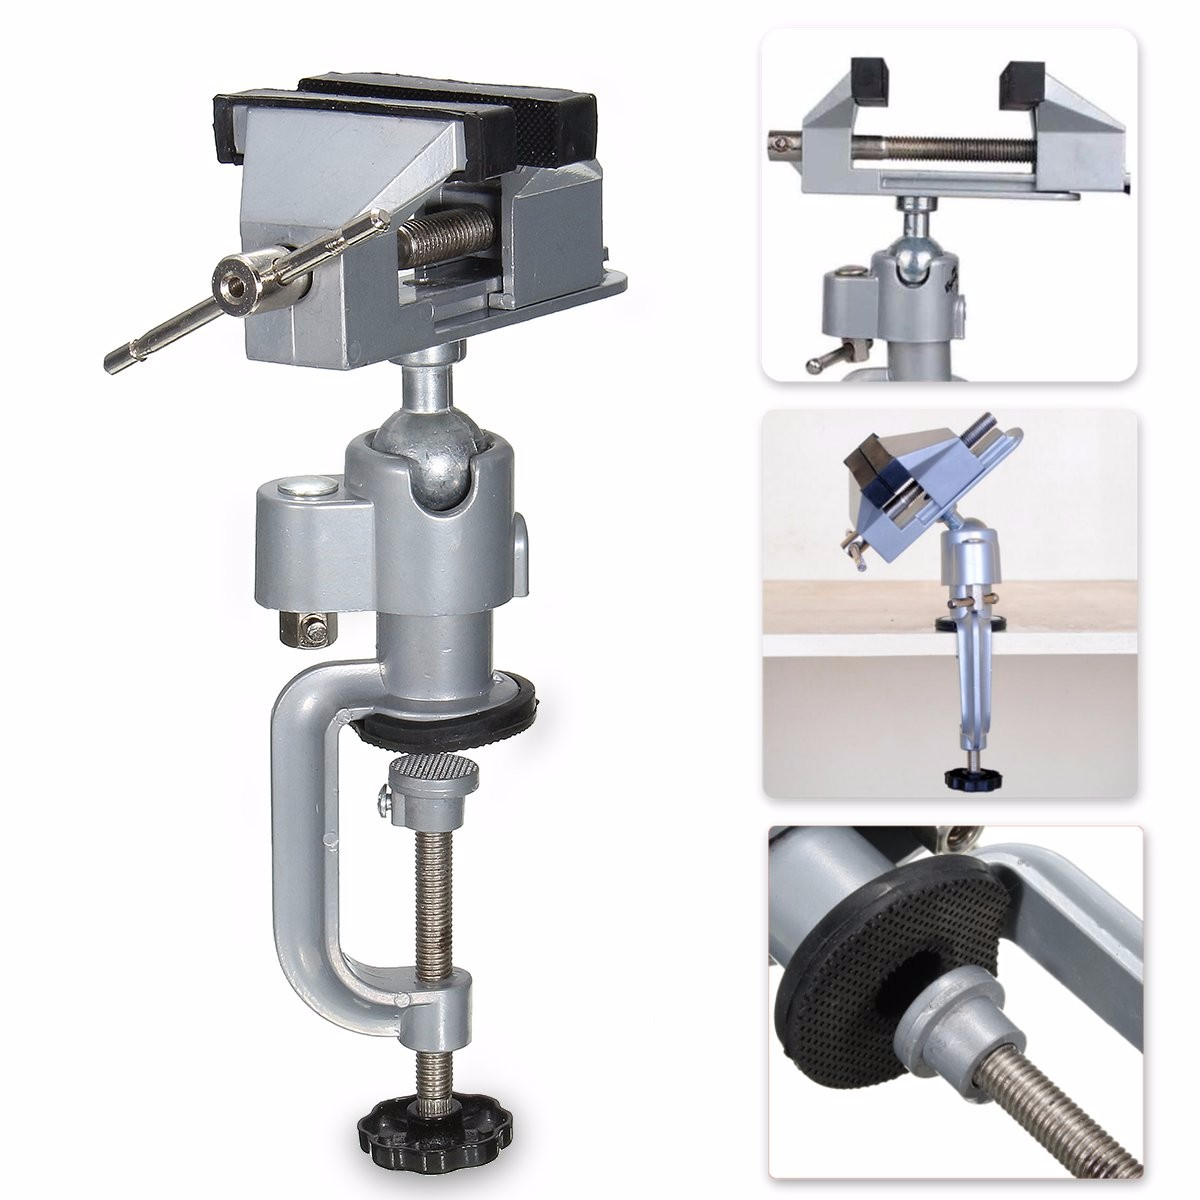 Aluminium Alloy 360 Degree Rotating Universal Vise Precise Mini Vise Clamp Multinational Functional 2 in 1 Table Vise Bench Vice free shipping aluminum alloy table vice mini bench vise diy tools swivel lock clamp vice craft jewelry hobby vise jaw width 40mm